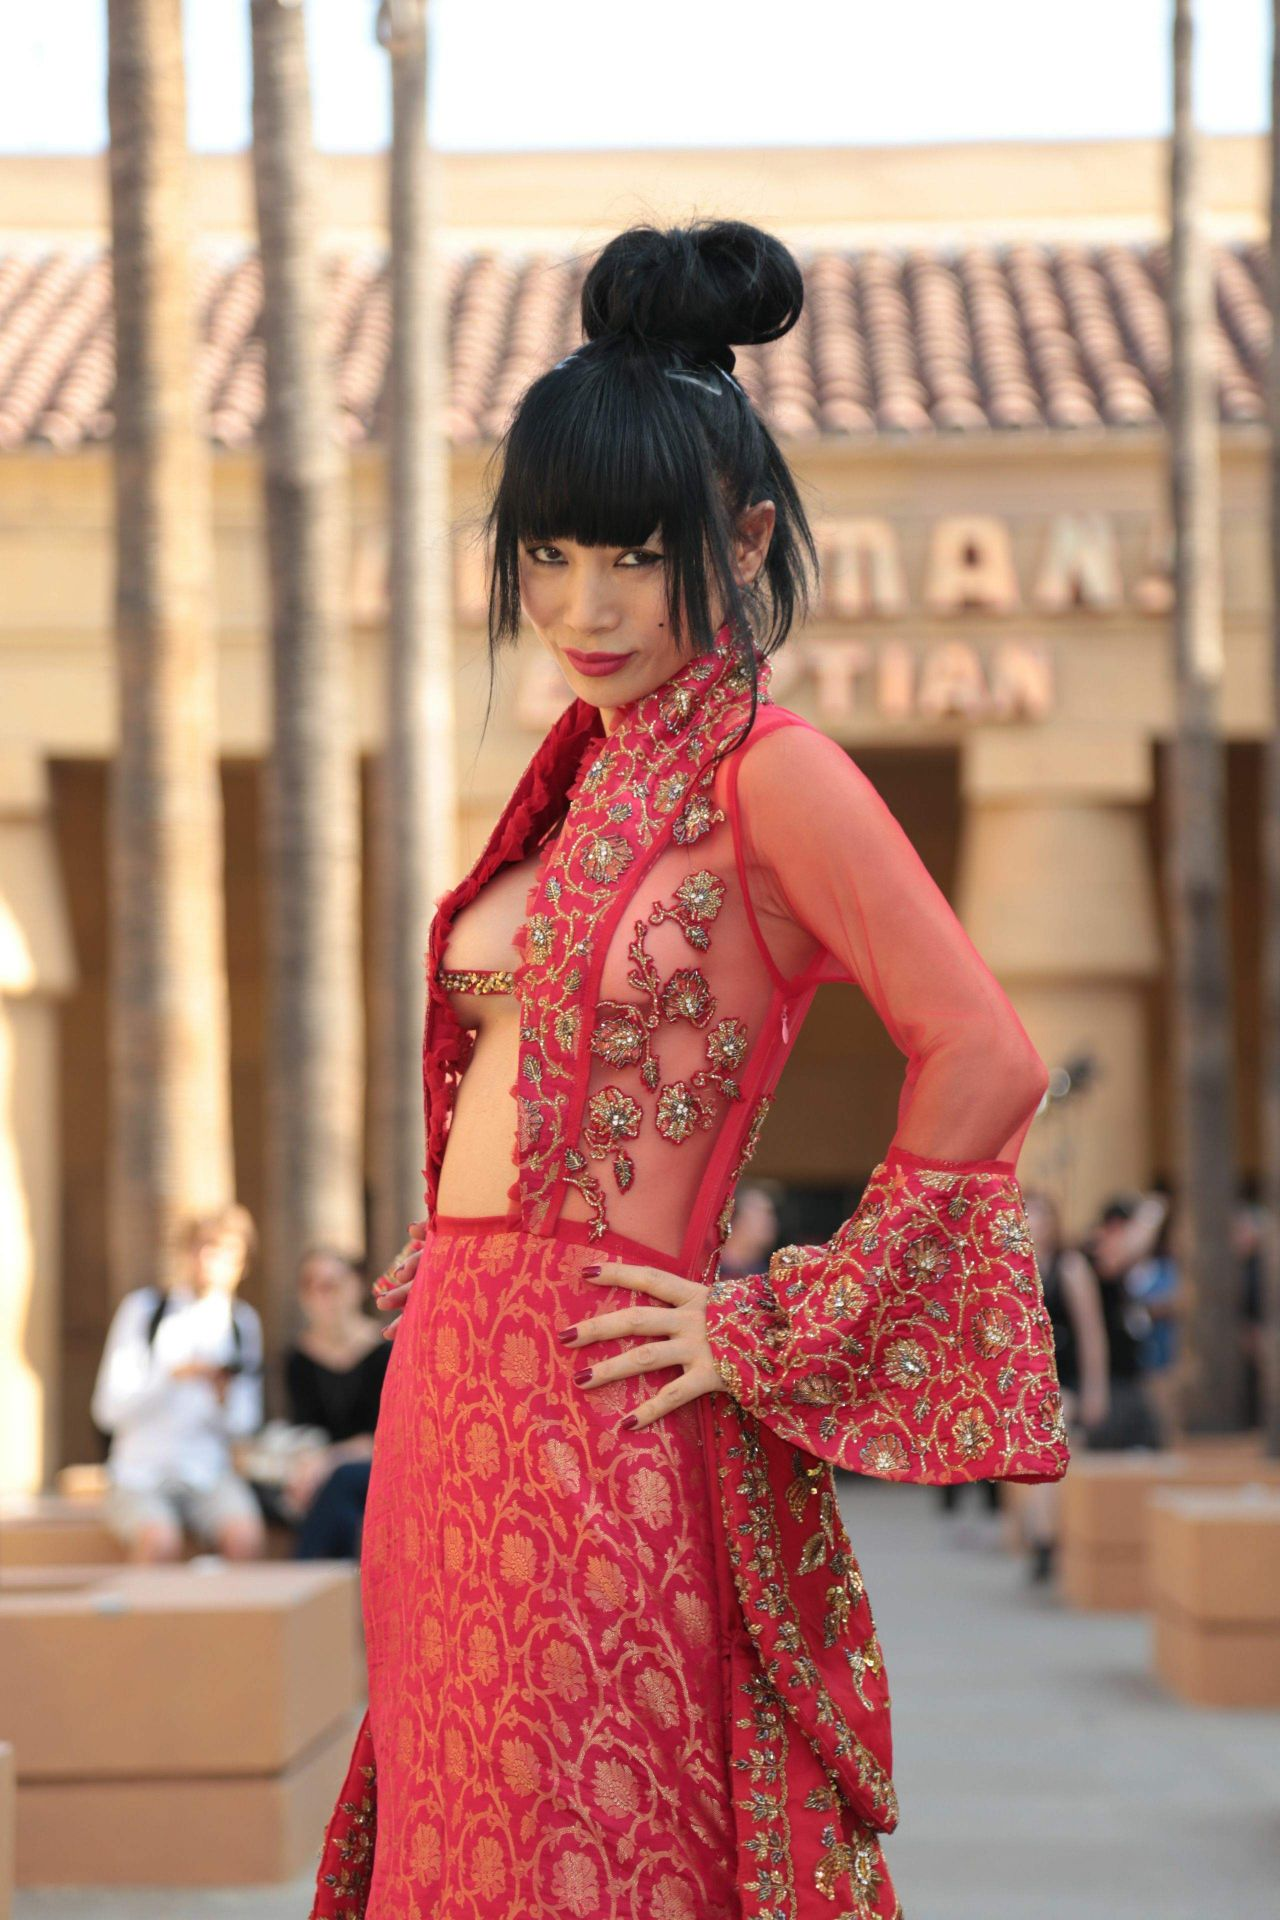 Bai Ling - Etheria Film Night at the Egyptian Theatre in ...